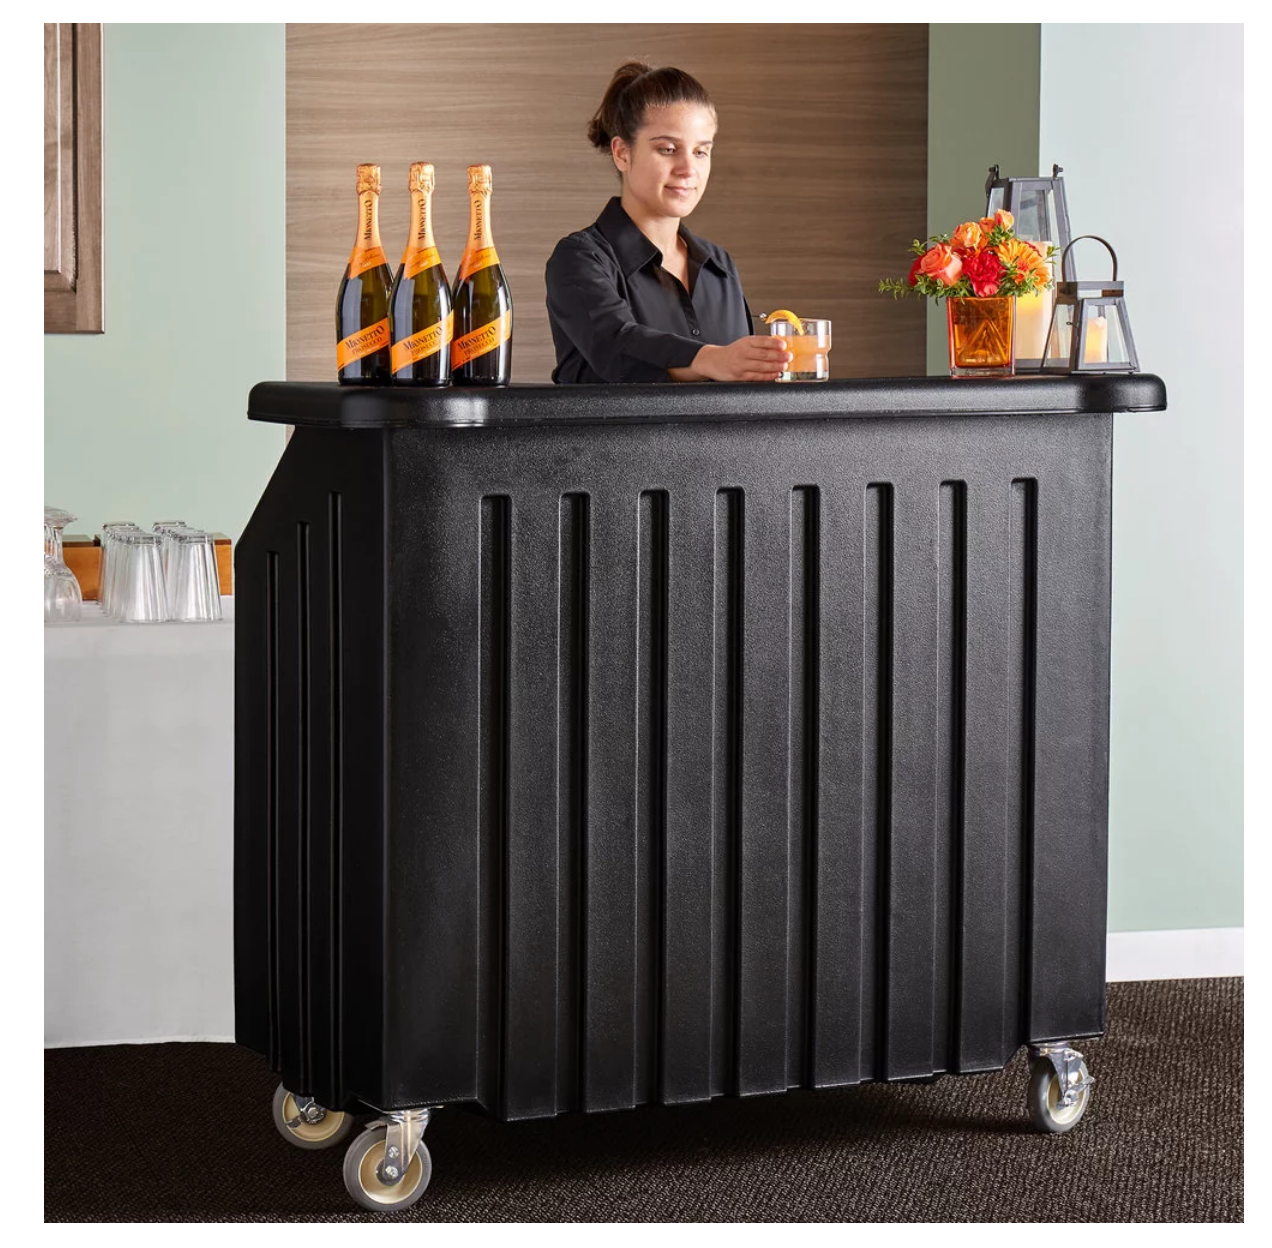 Portable bar rental for weddings and events in Fox Point, Bayside, Mequon, Lake Geneva, and Brookfield Wisconsin